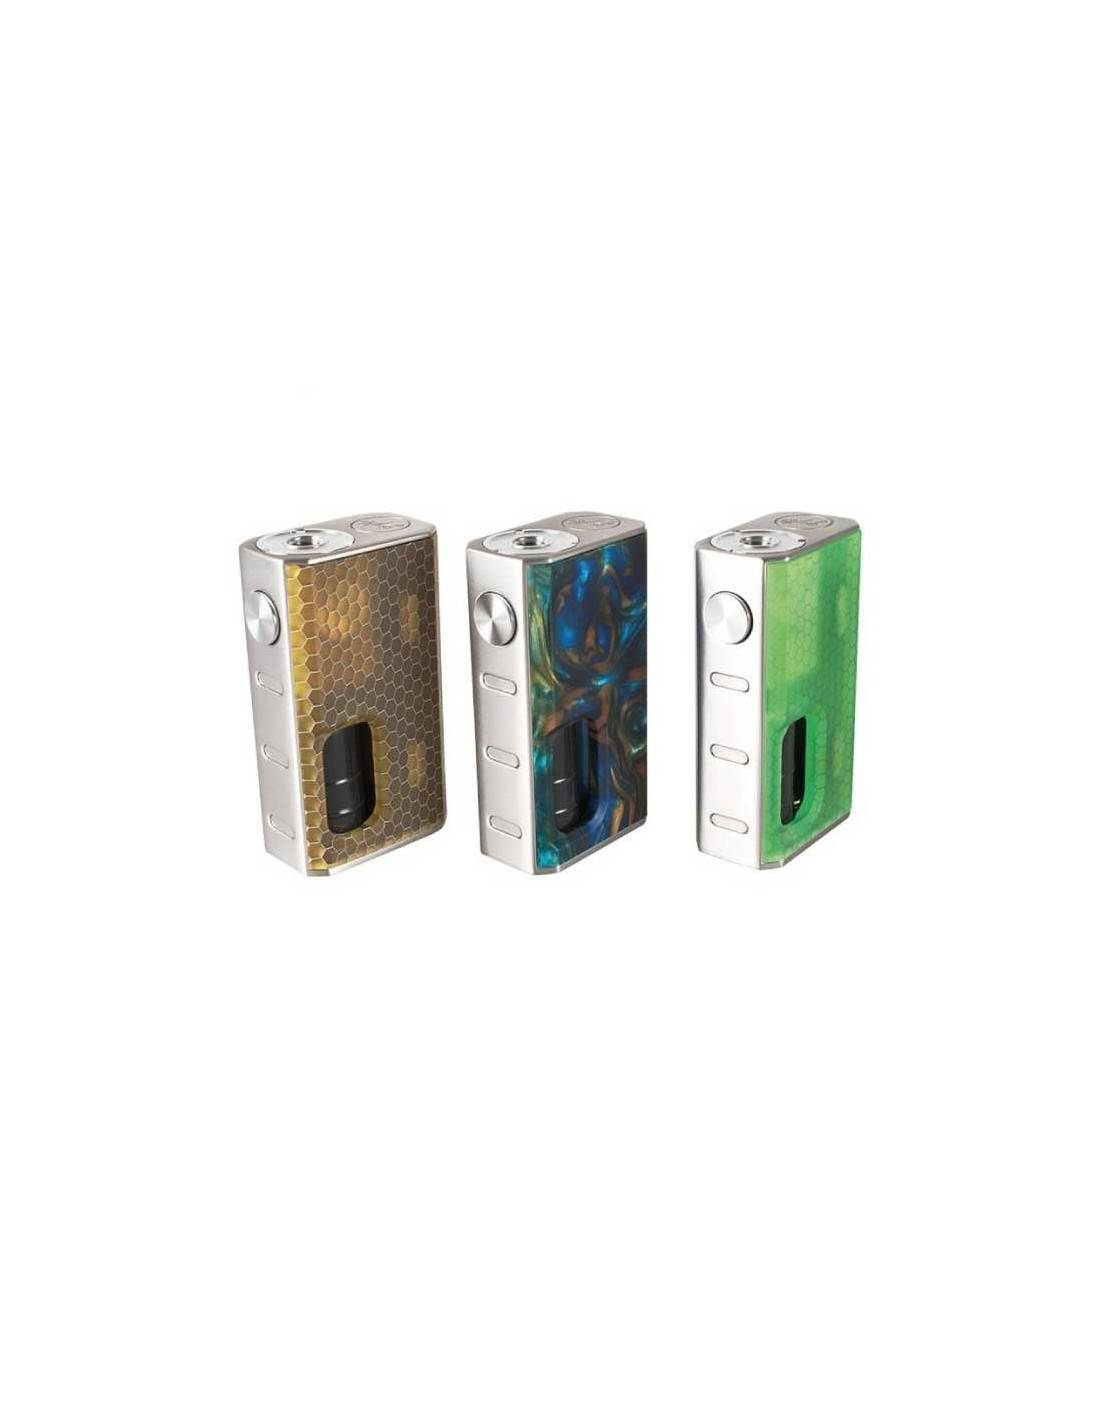 Wismec Luxotic Batteria Bf Squonk Bottom Feeder Box Mod - Big Battery